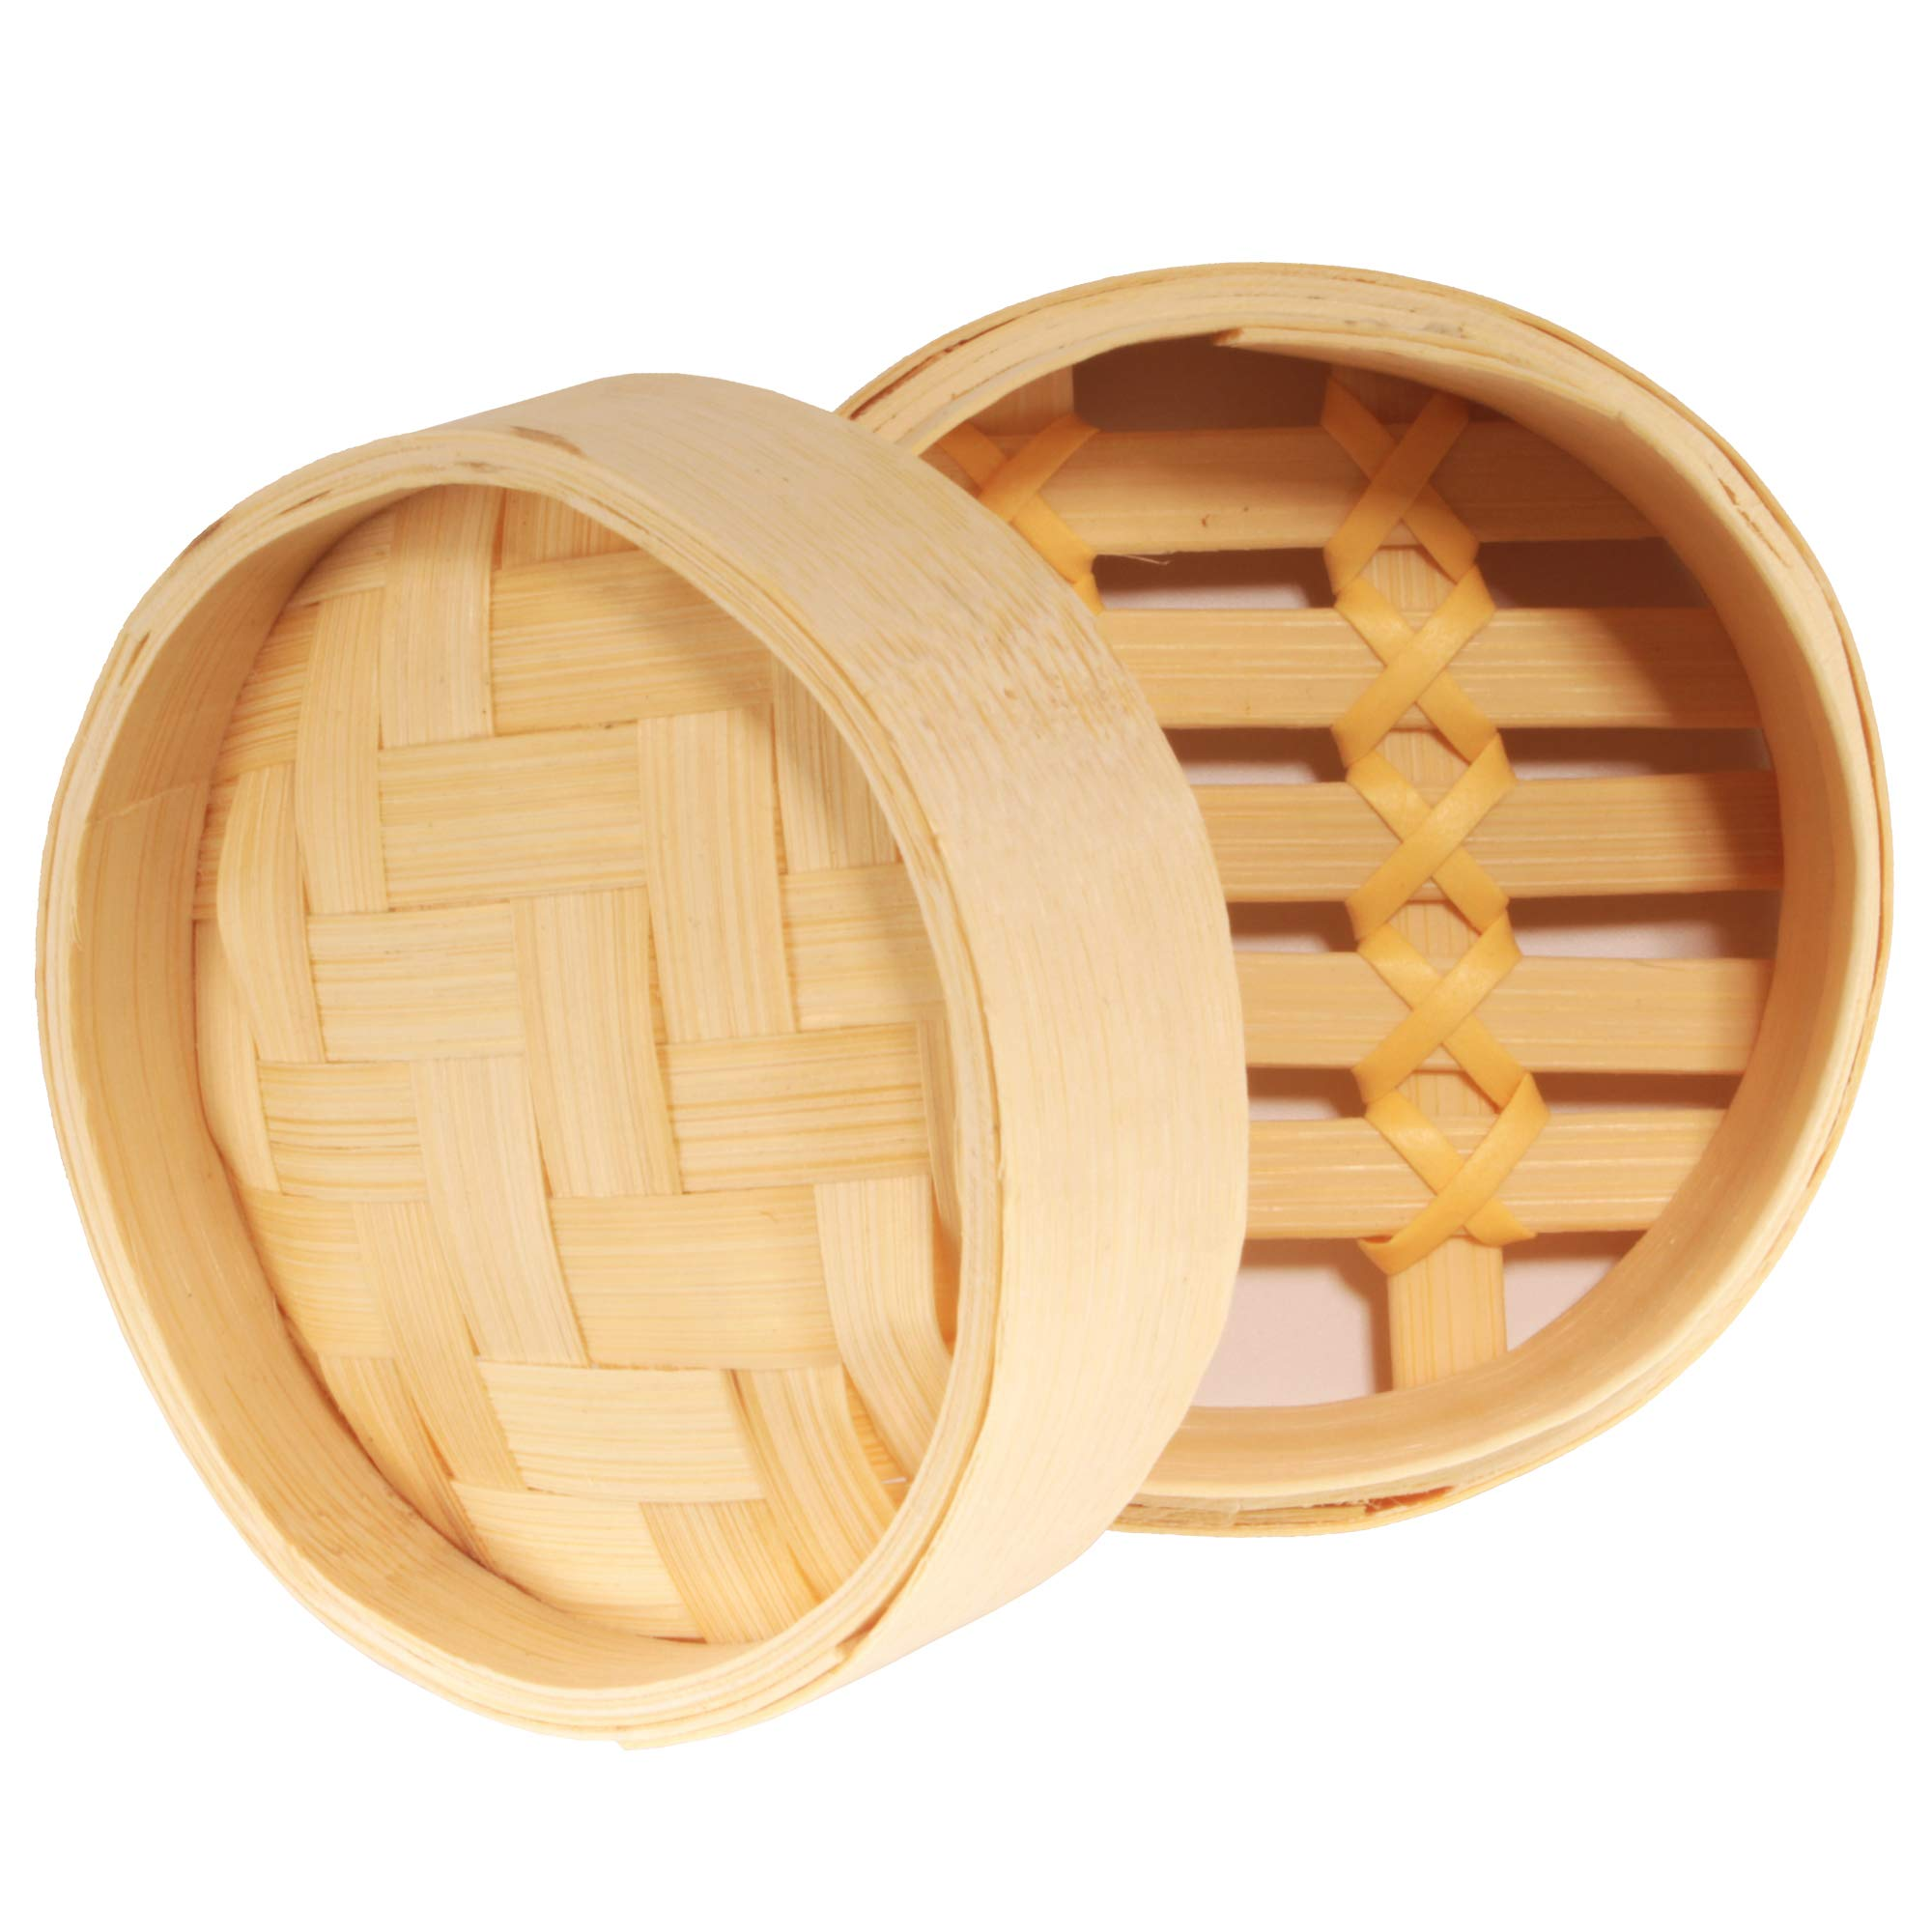 BambooMN 3 Inch Mini Bamboo Dim Sum Dumpling Steamer Basket for Dessert Party Favors Wedding Birthday Home Decorations Supplies, 100 Pieces by BambooMN (Image #2)